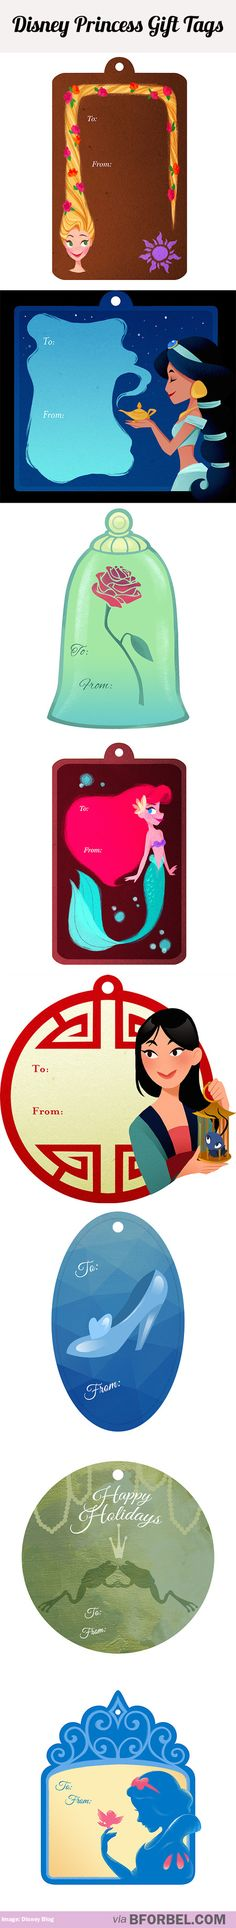 Disney Princess Gift Tags To Take Your Gift Wrapping To The Next Level…